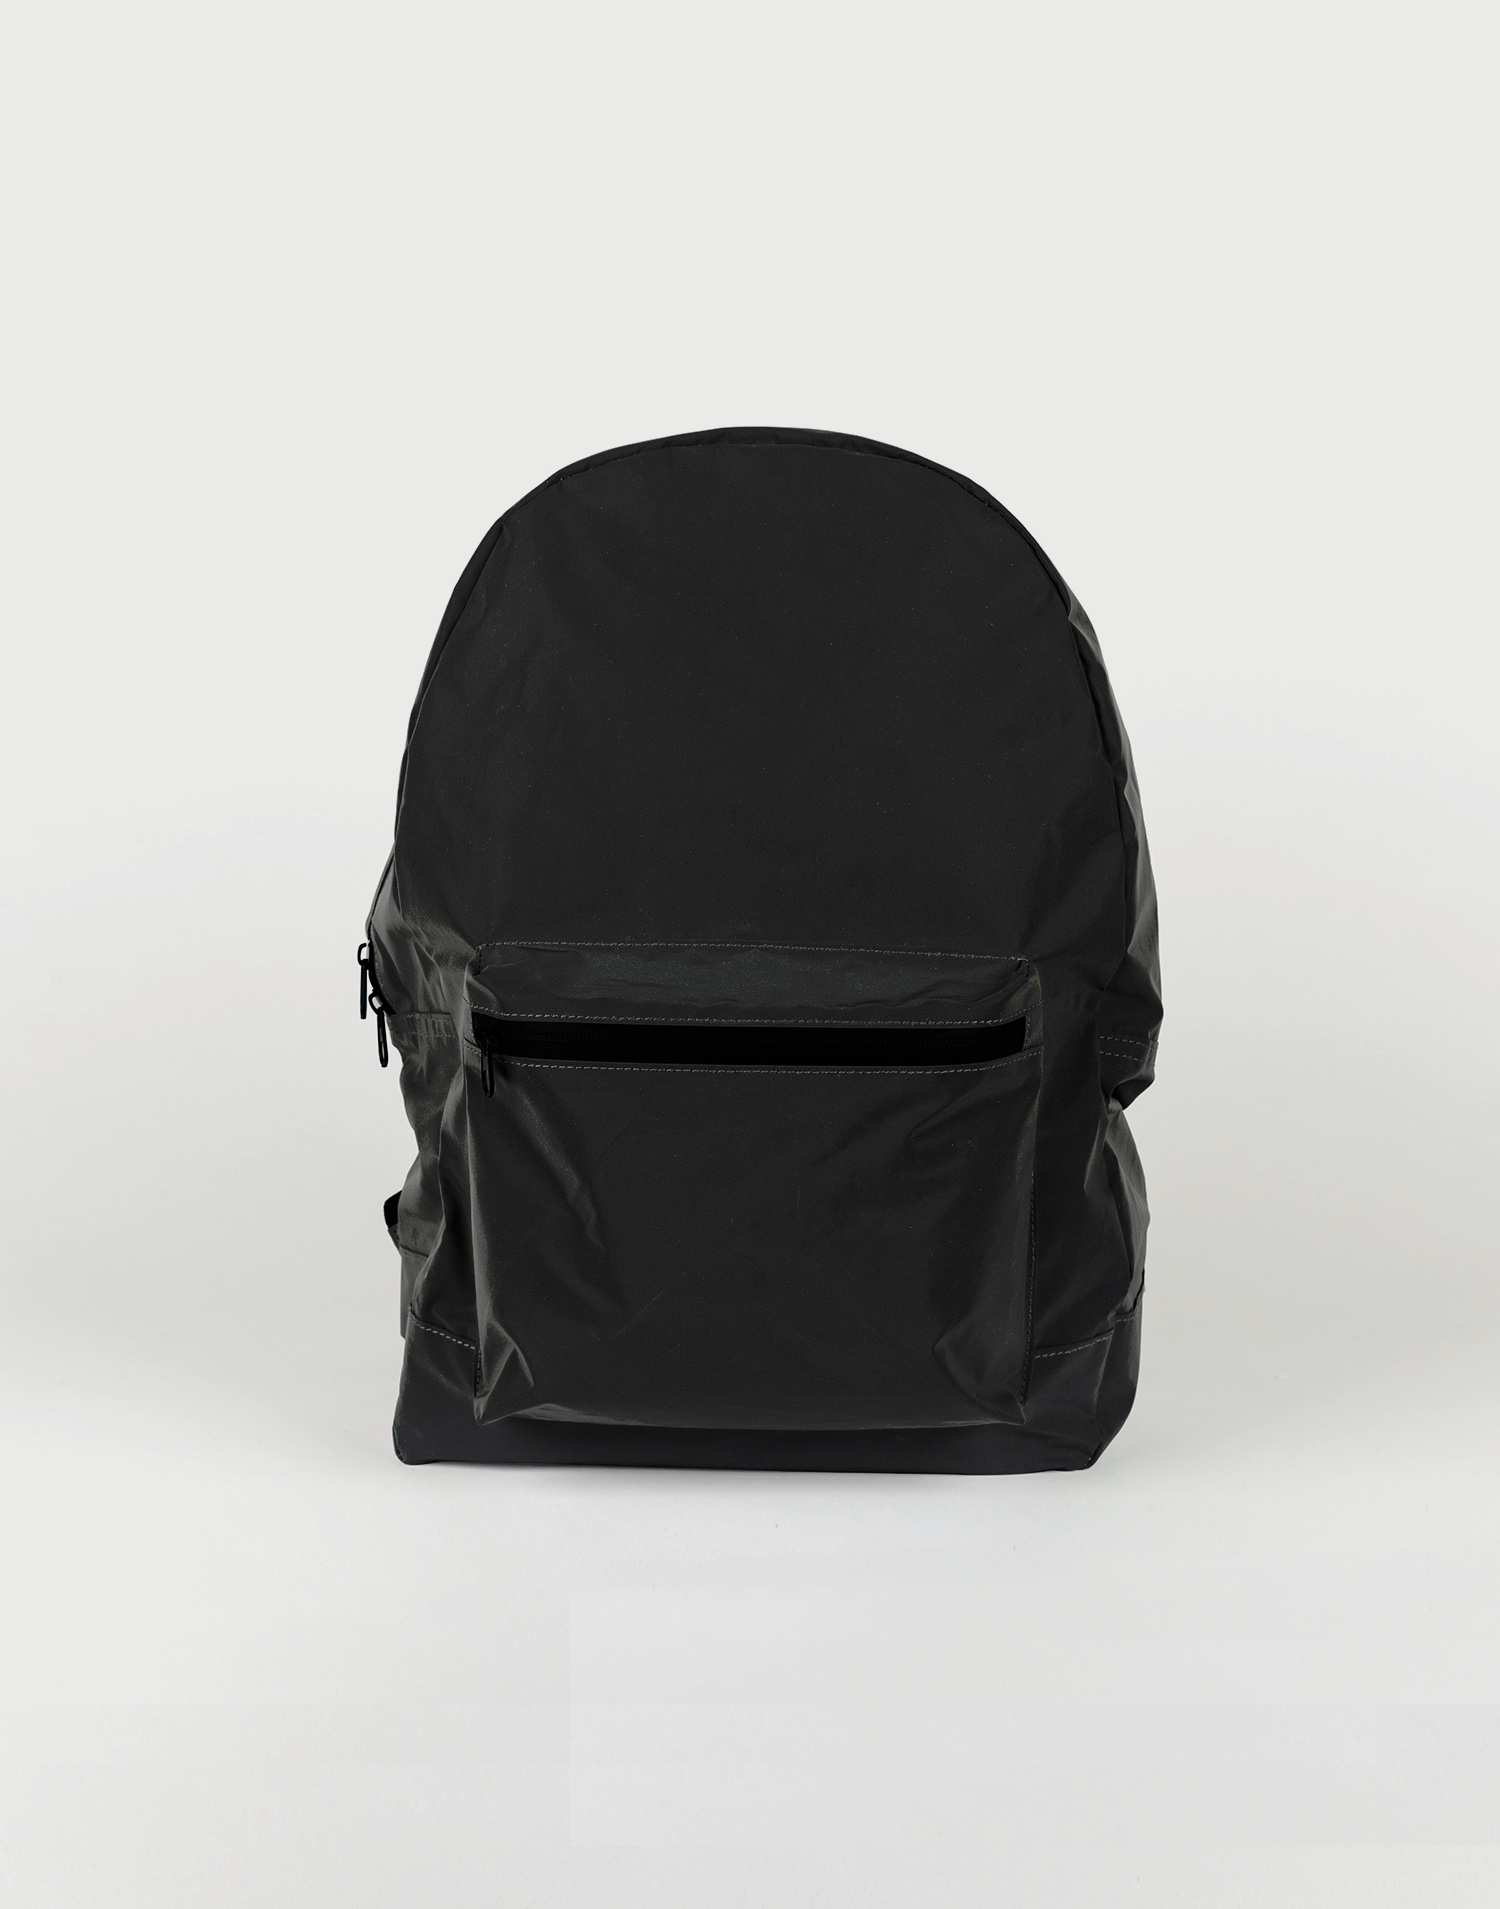 Foldable reflective backpack